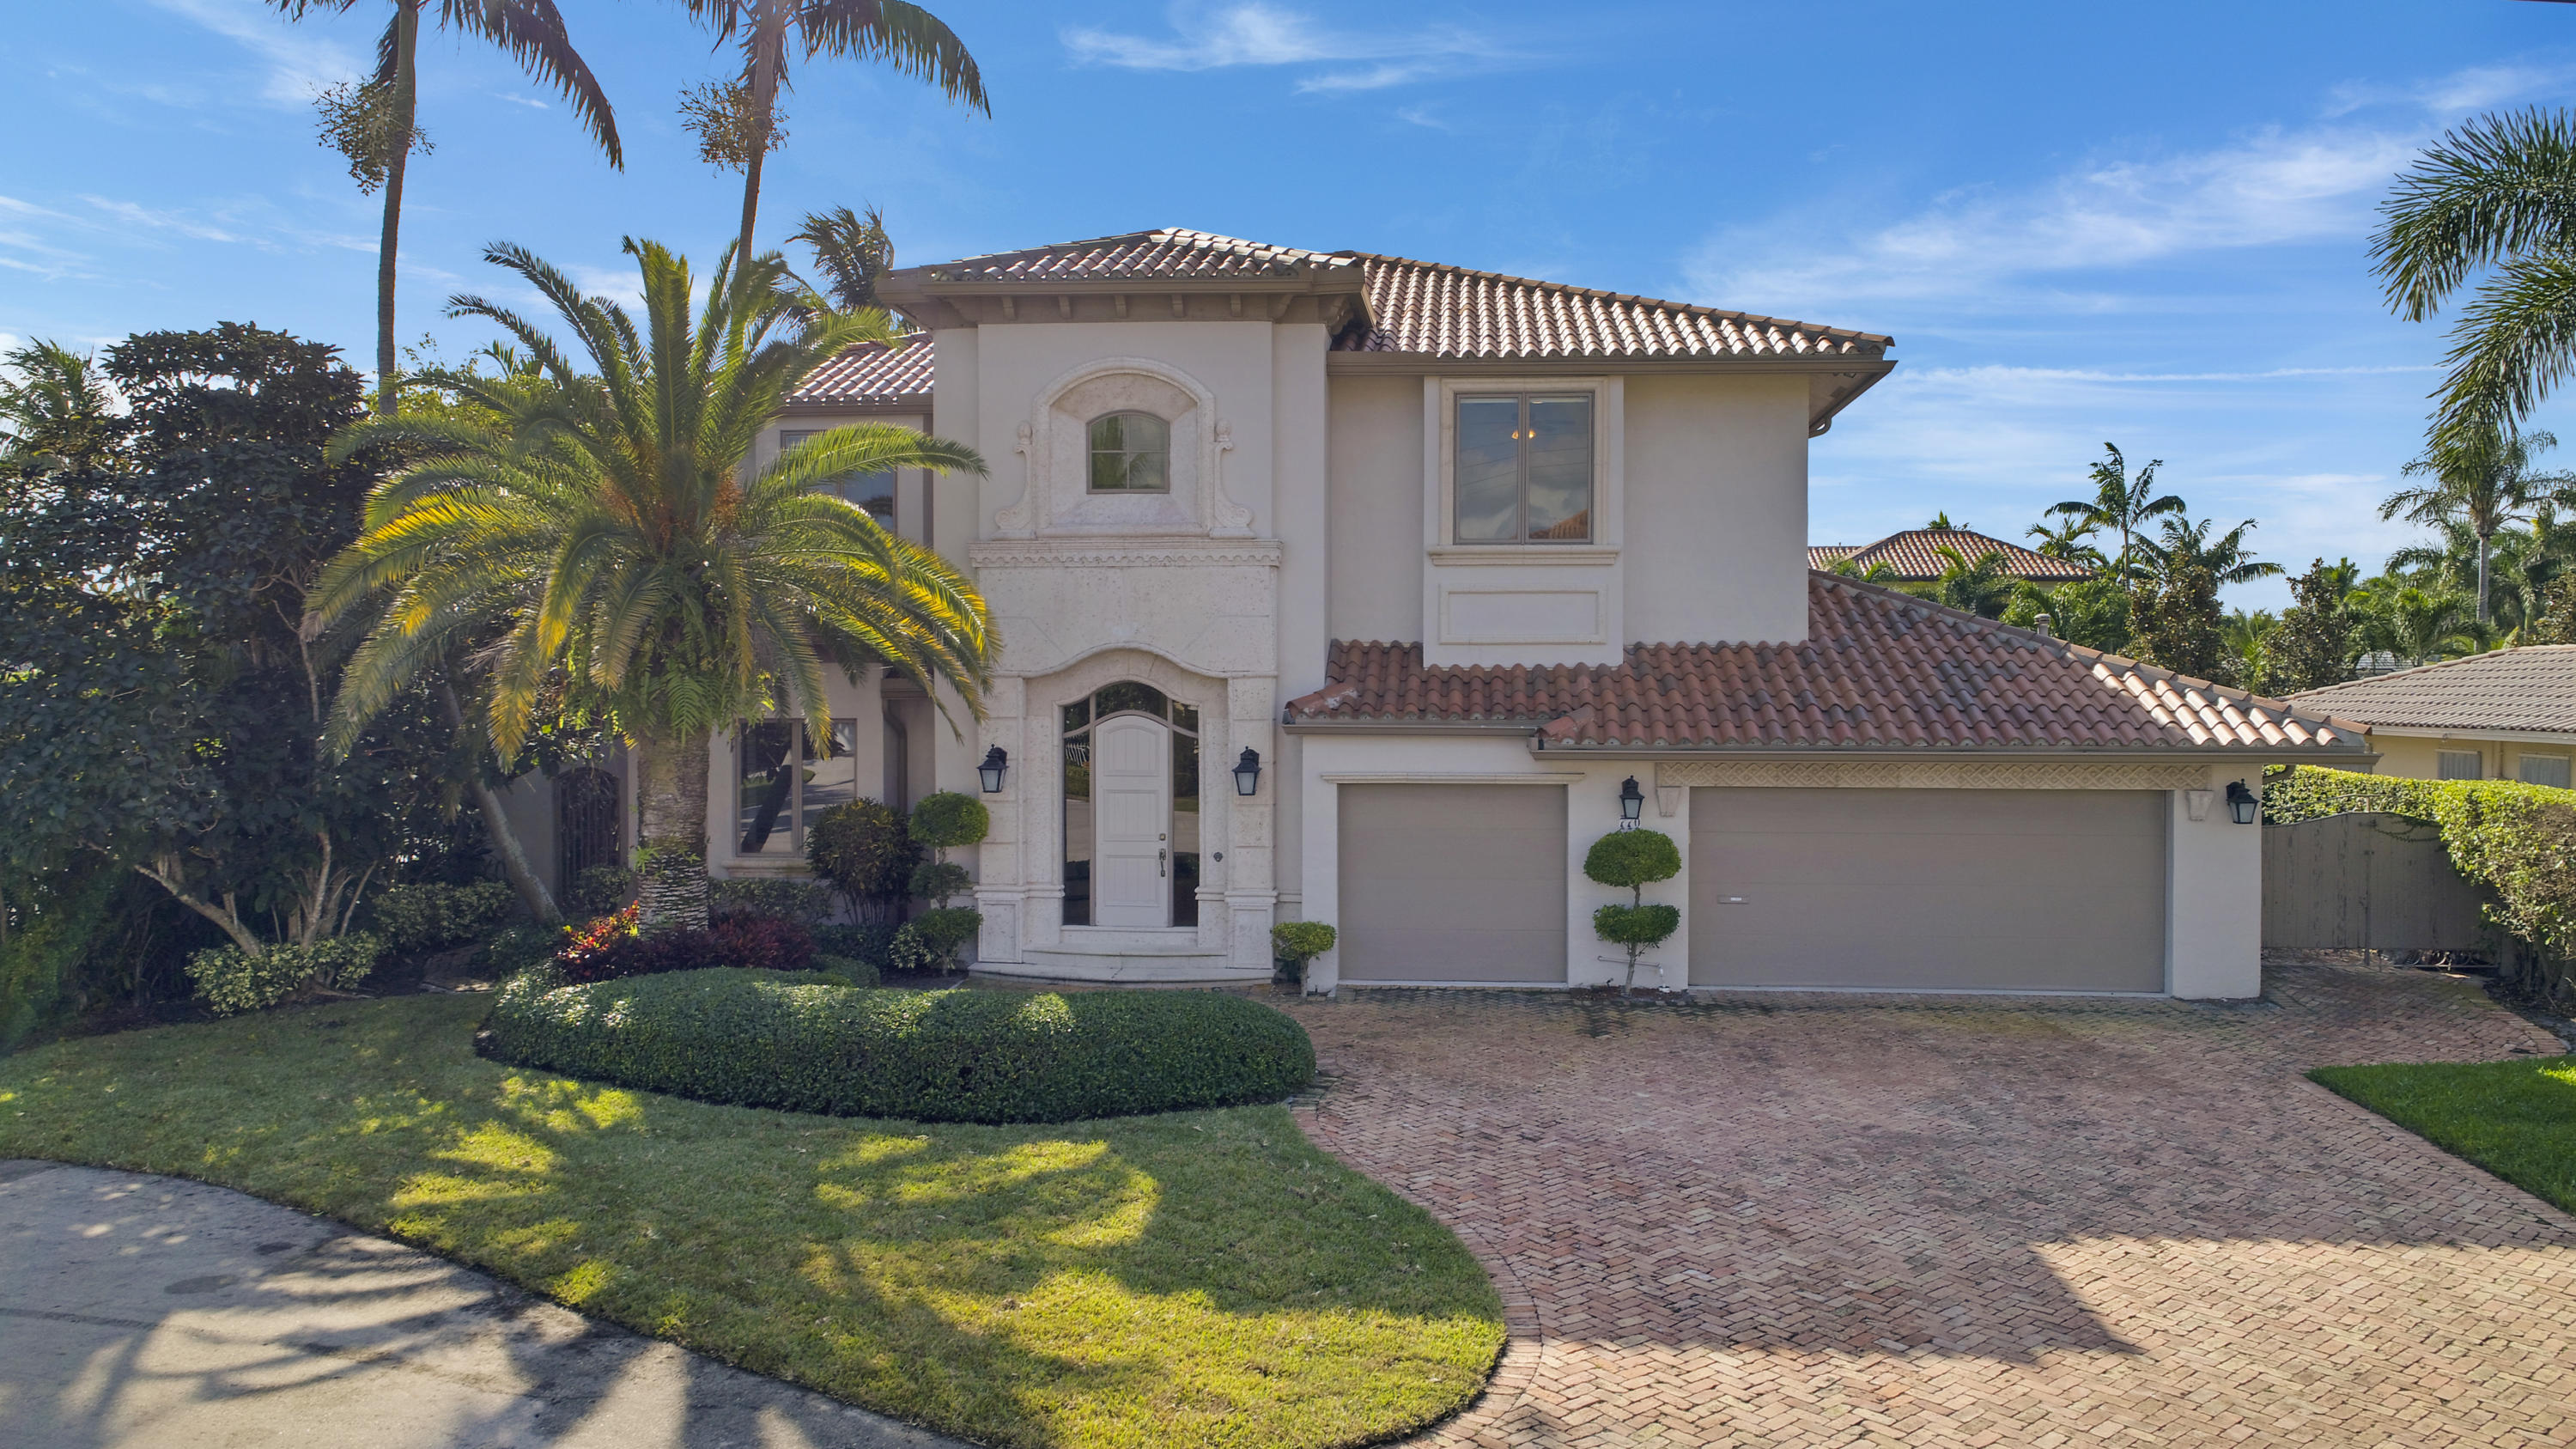 Home for sale in Lake Rogers Boca Raton Florida